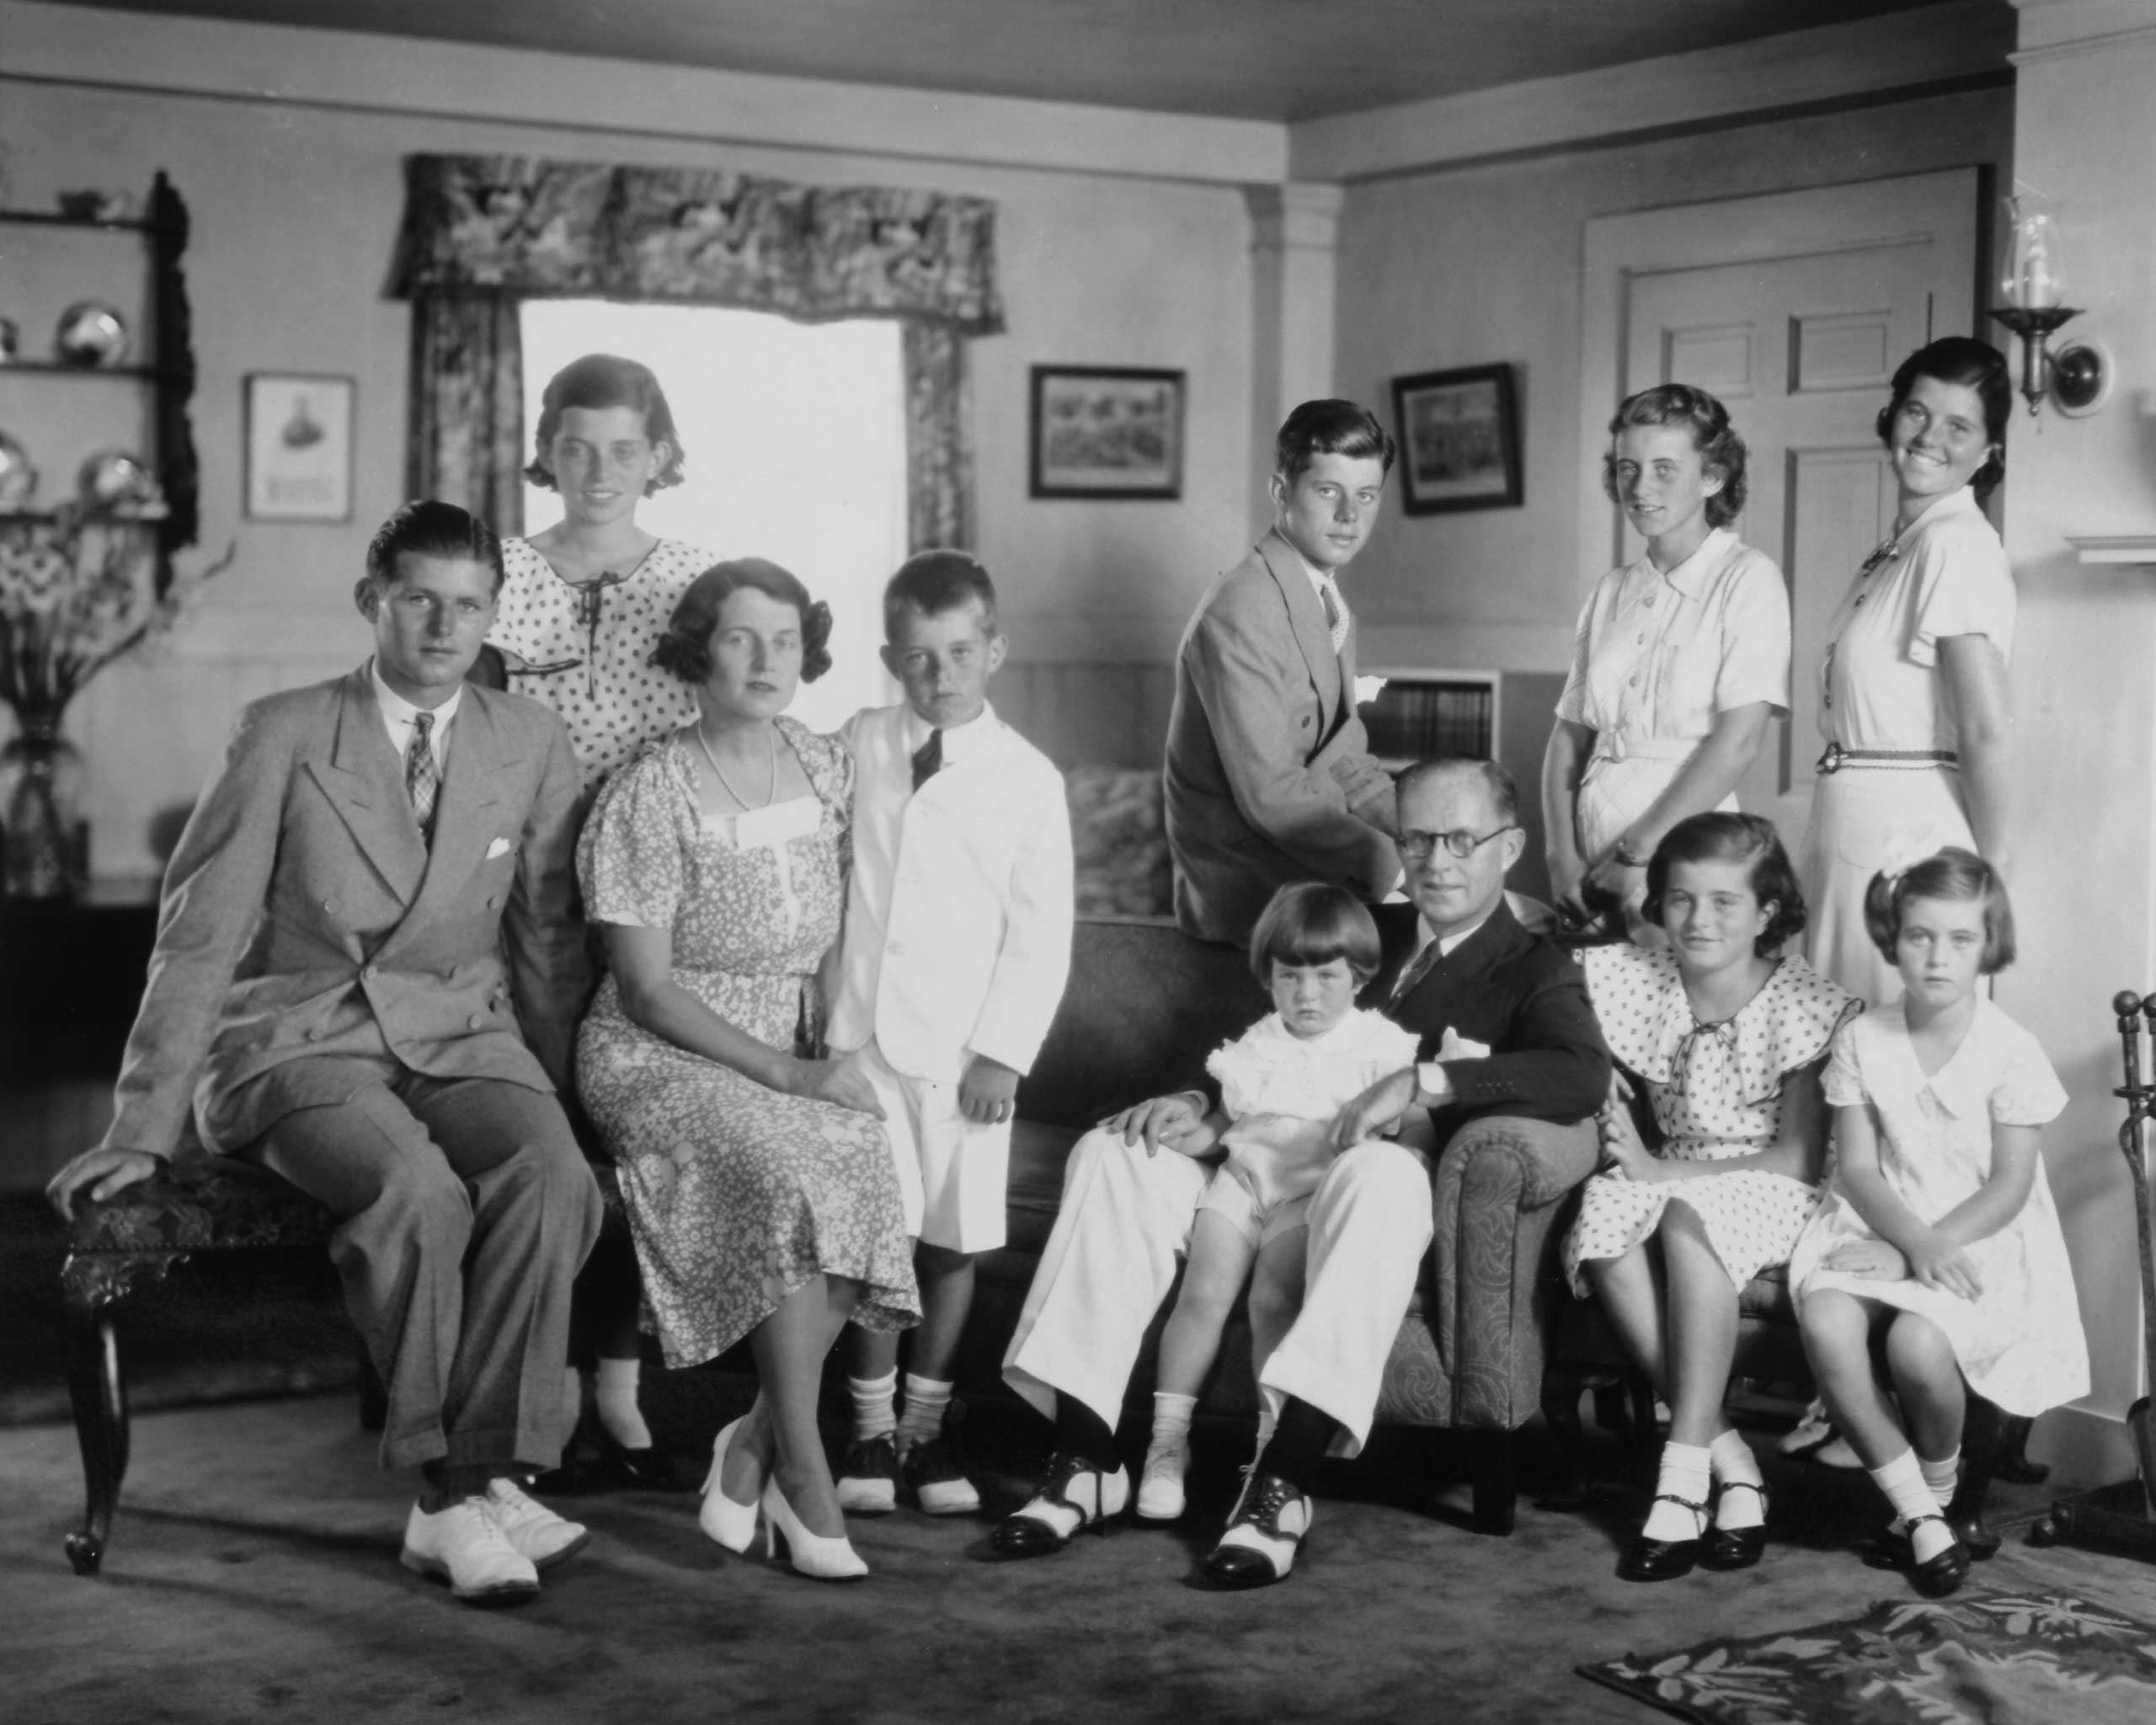 THE KENNEDY FAMILY: The illustrious clan in their Brooklin, Mass., living room, in the 1930s. Front row from left: Joseph P Kennedy Jr (1915 - 1944), Rose Kennedy (1890 - 1995), Robert Kennedy (1925 - 1968), Edward Kennedy, Joseph P Kennedy Sr (1888 - 1969),  Patricia Kennedy (1926 - 2006), Jean Kennedy; back row from left: Eunice Kennedy, John F Kennedy (1917 - 1963), Kathleen Kennedy (1920 - 1948), and Rosemary Kennedy (1918 - 2005)